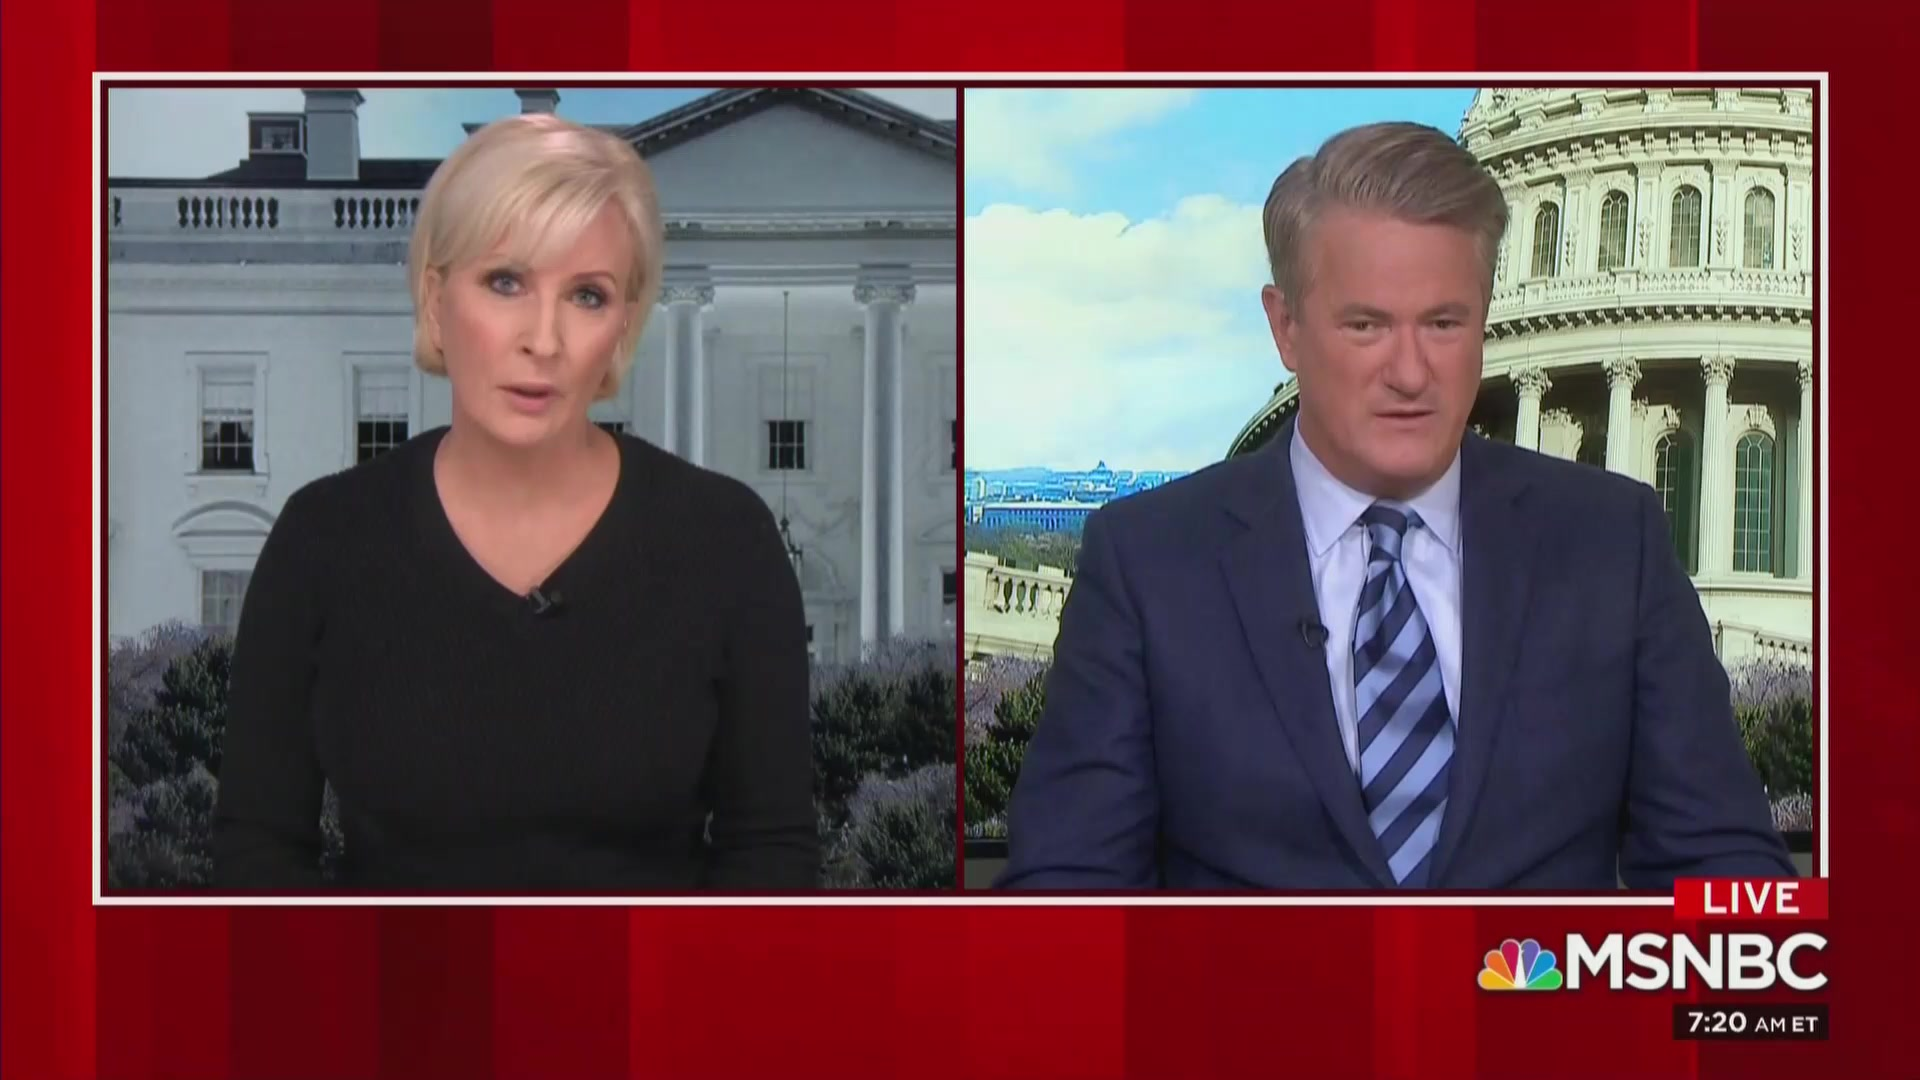 Mika Brzezinski Teases Story That Trump Gave Her 'Unbelievably Inappropriate Hug'